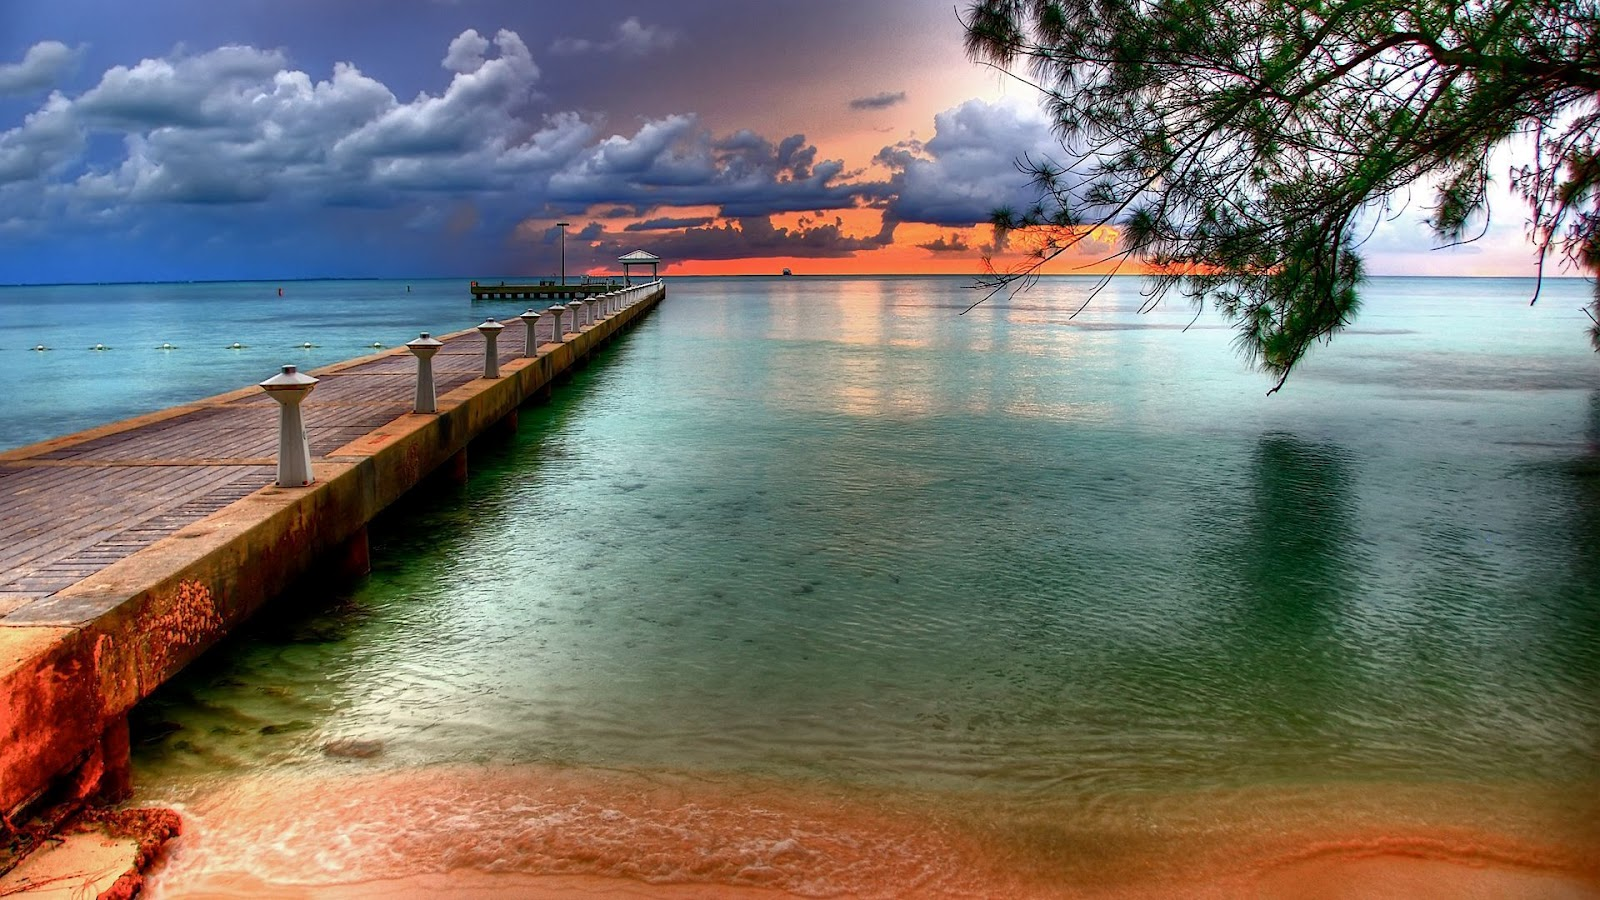 Hd wallpaper for laptop - Hd Sunset Romantic Place Lover Nature Background Wallpaper For Laptop